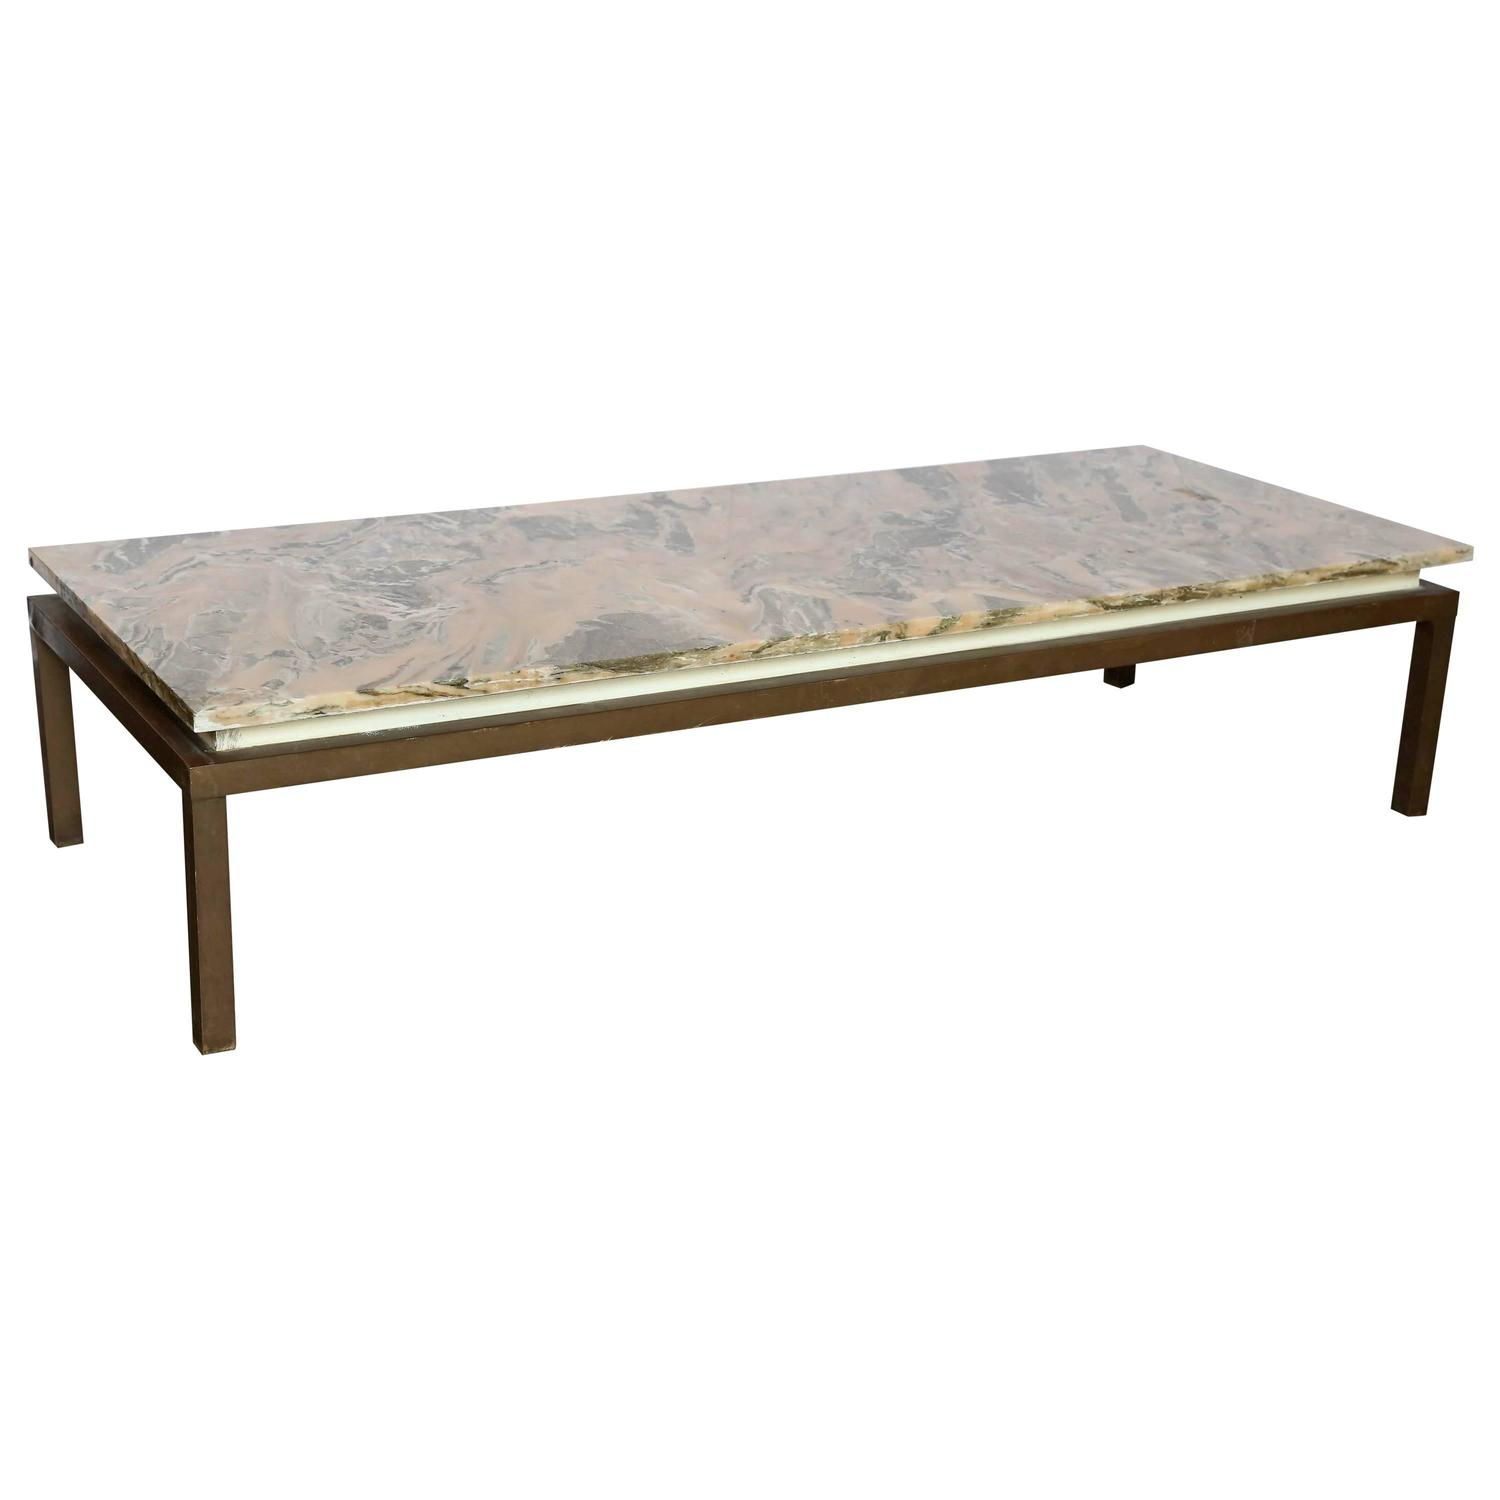 Terranova Coffee Table or Cocktail Table with Hewn Marble Top and